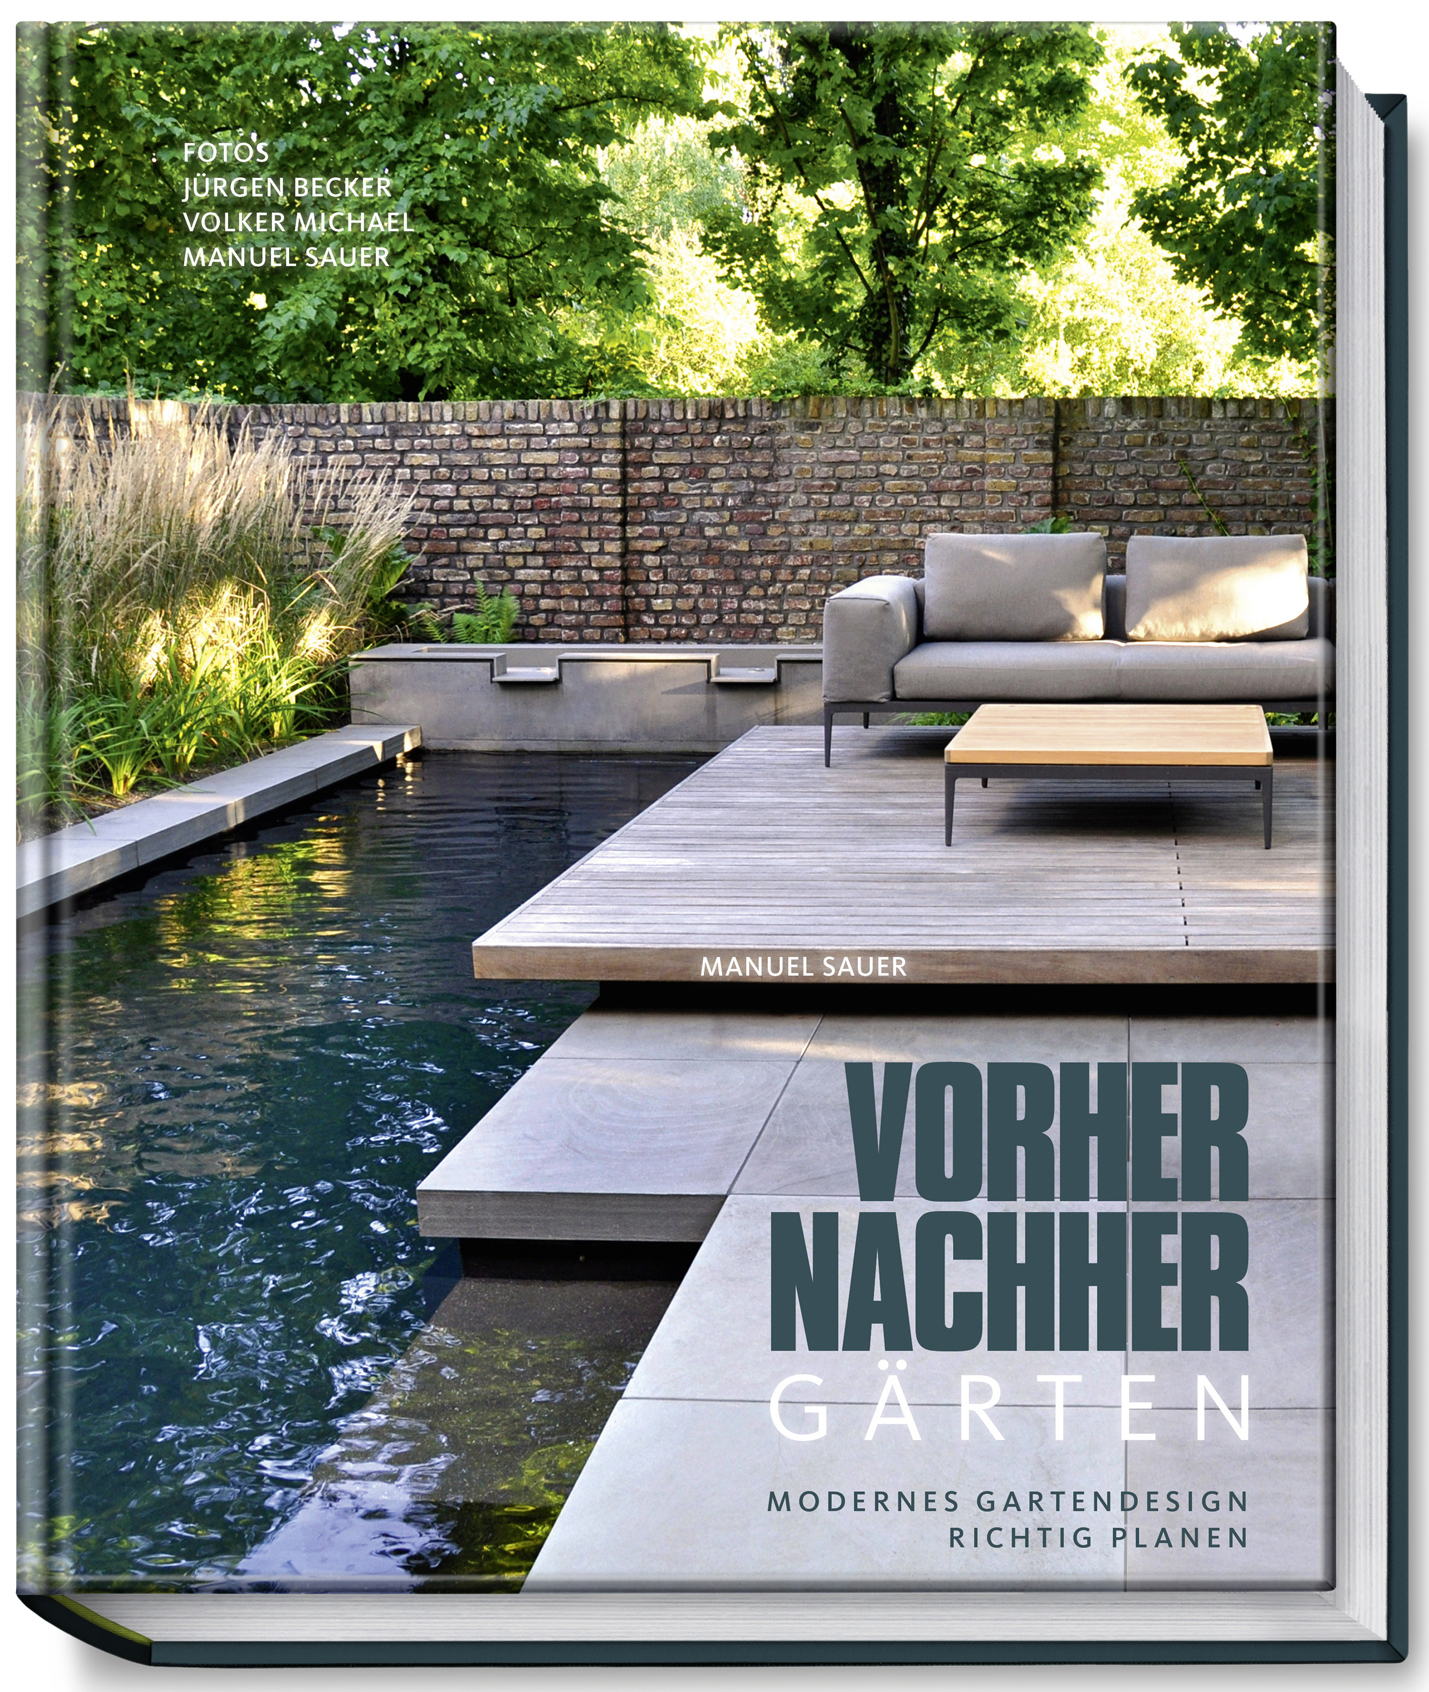 Cover download for Gartengestaltung vorher nachher